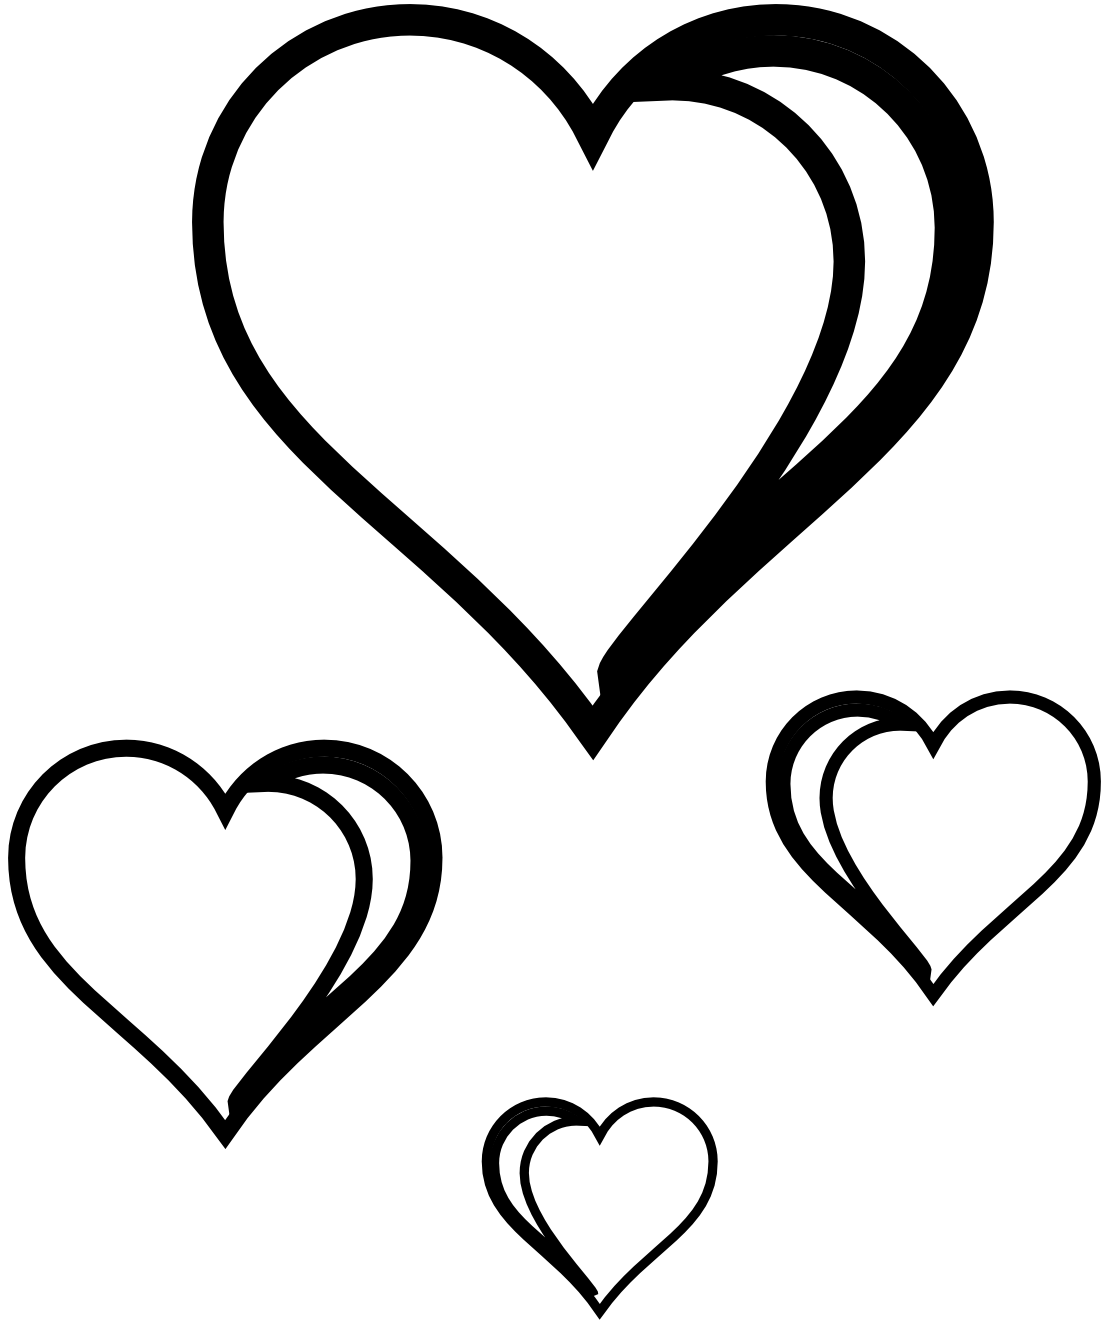 Cute heart clipart black and white svg freeuse stock Cute Heart Clipart Black And White - ClipArt Best - ClipArt Best svg freeuse stock